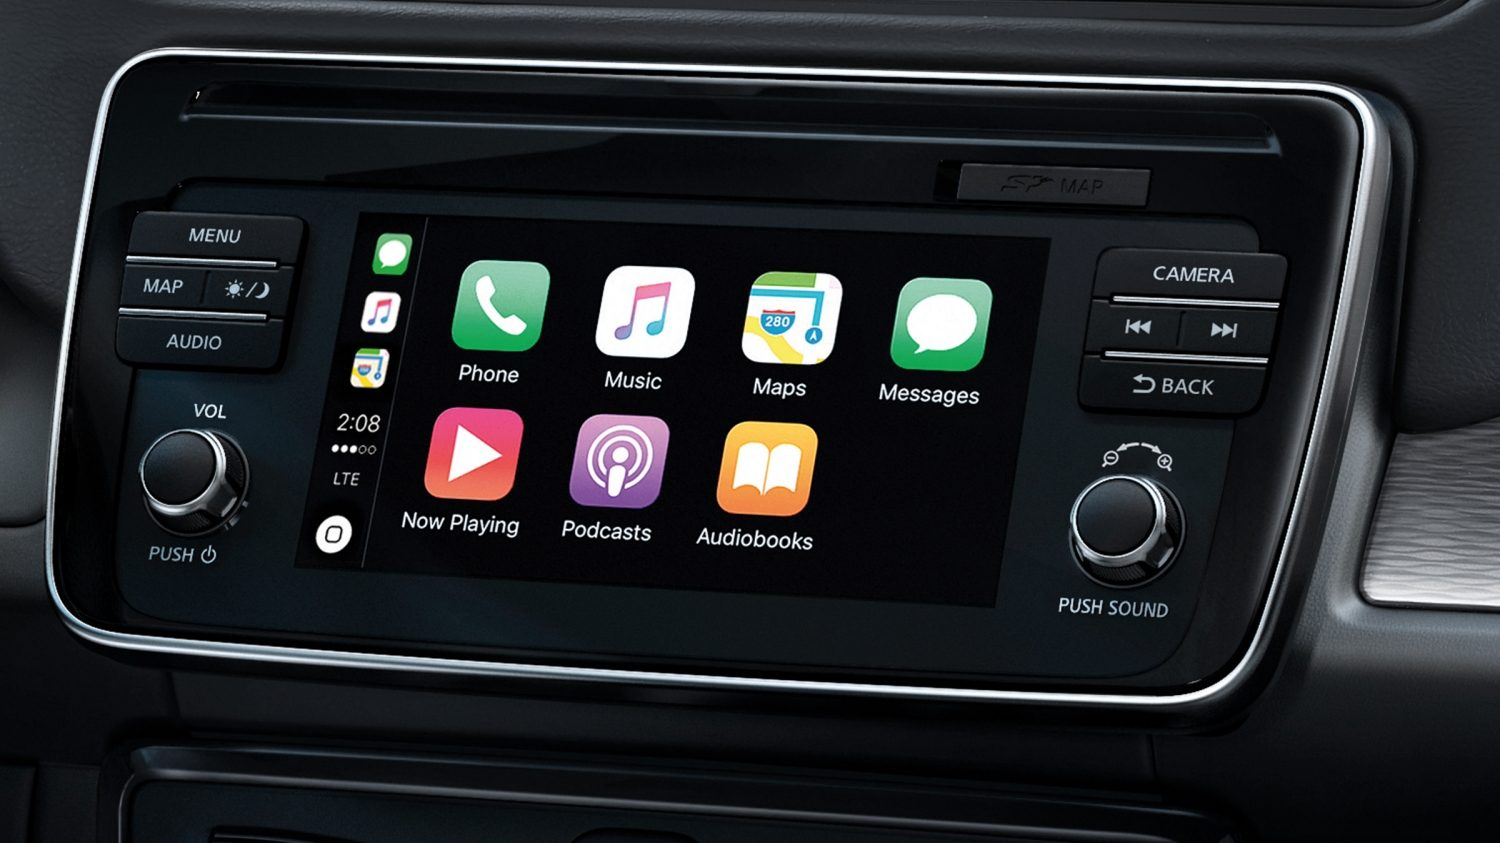 Nya Nissan LEAF – navigationsskärm som visar Apple CarPlay